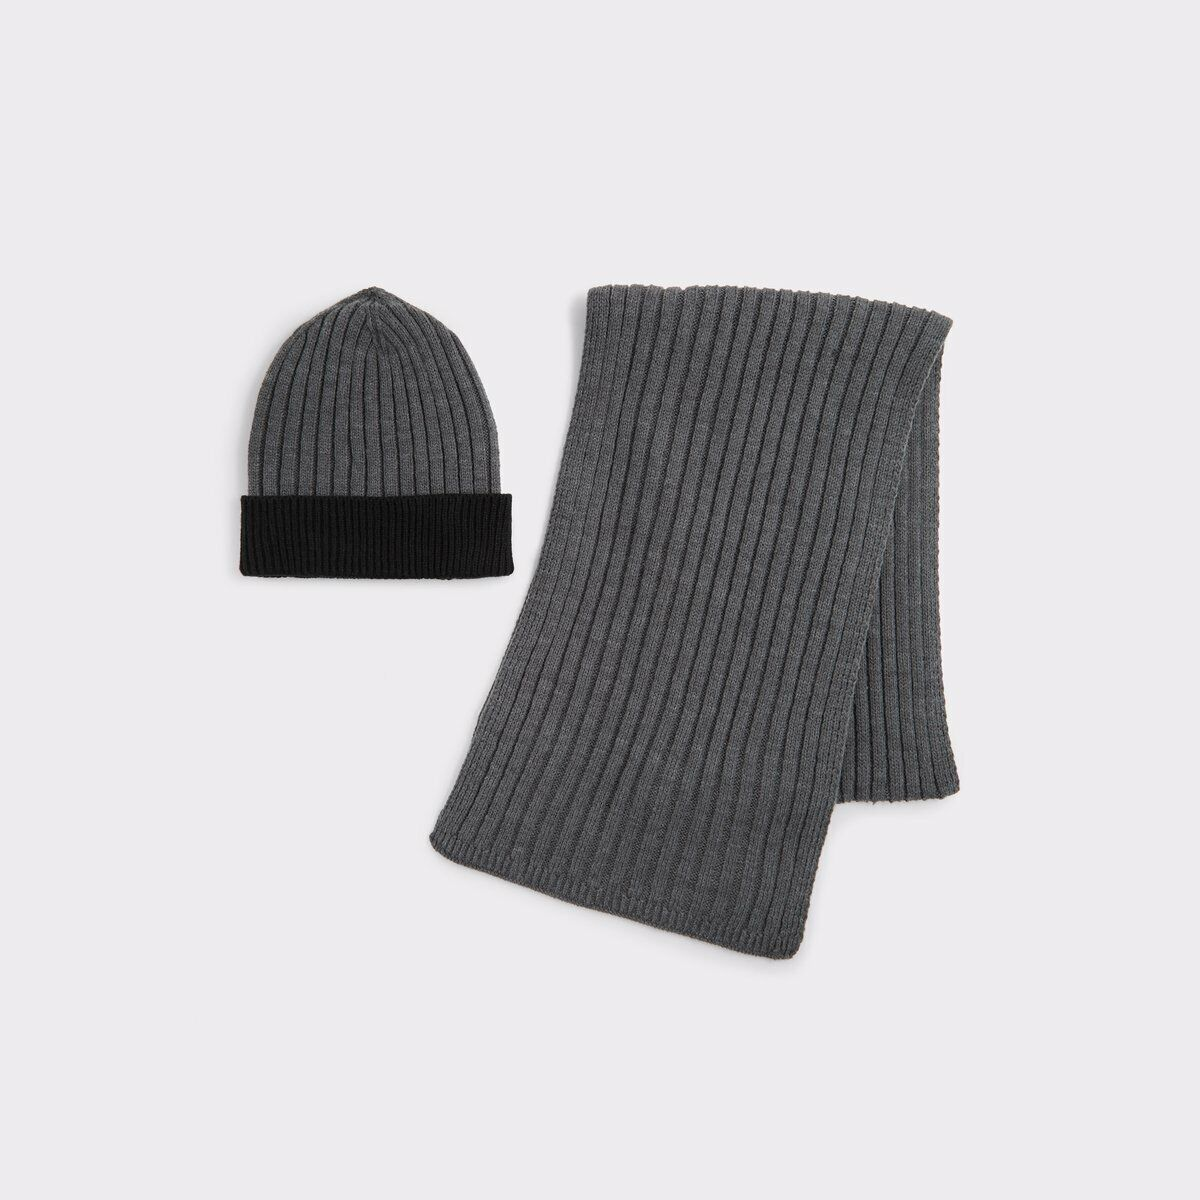 ALDO ASESIEN - Men's Scarf & Hat Set - Grey - Brand New With Tags